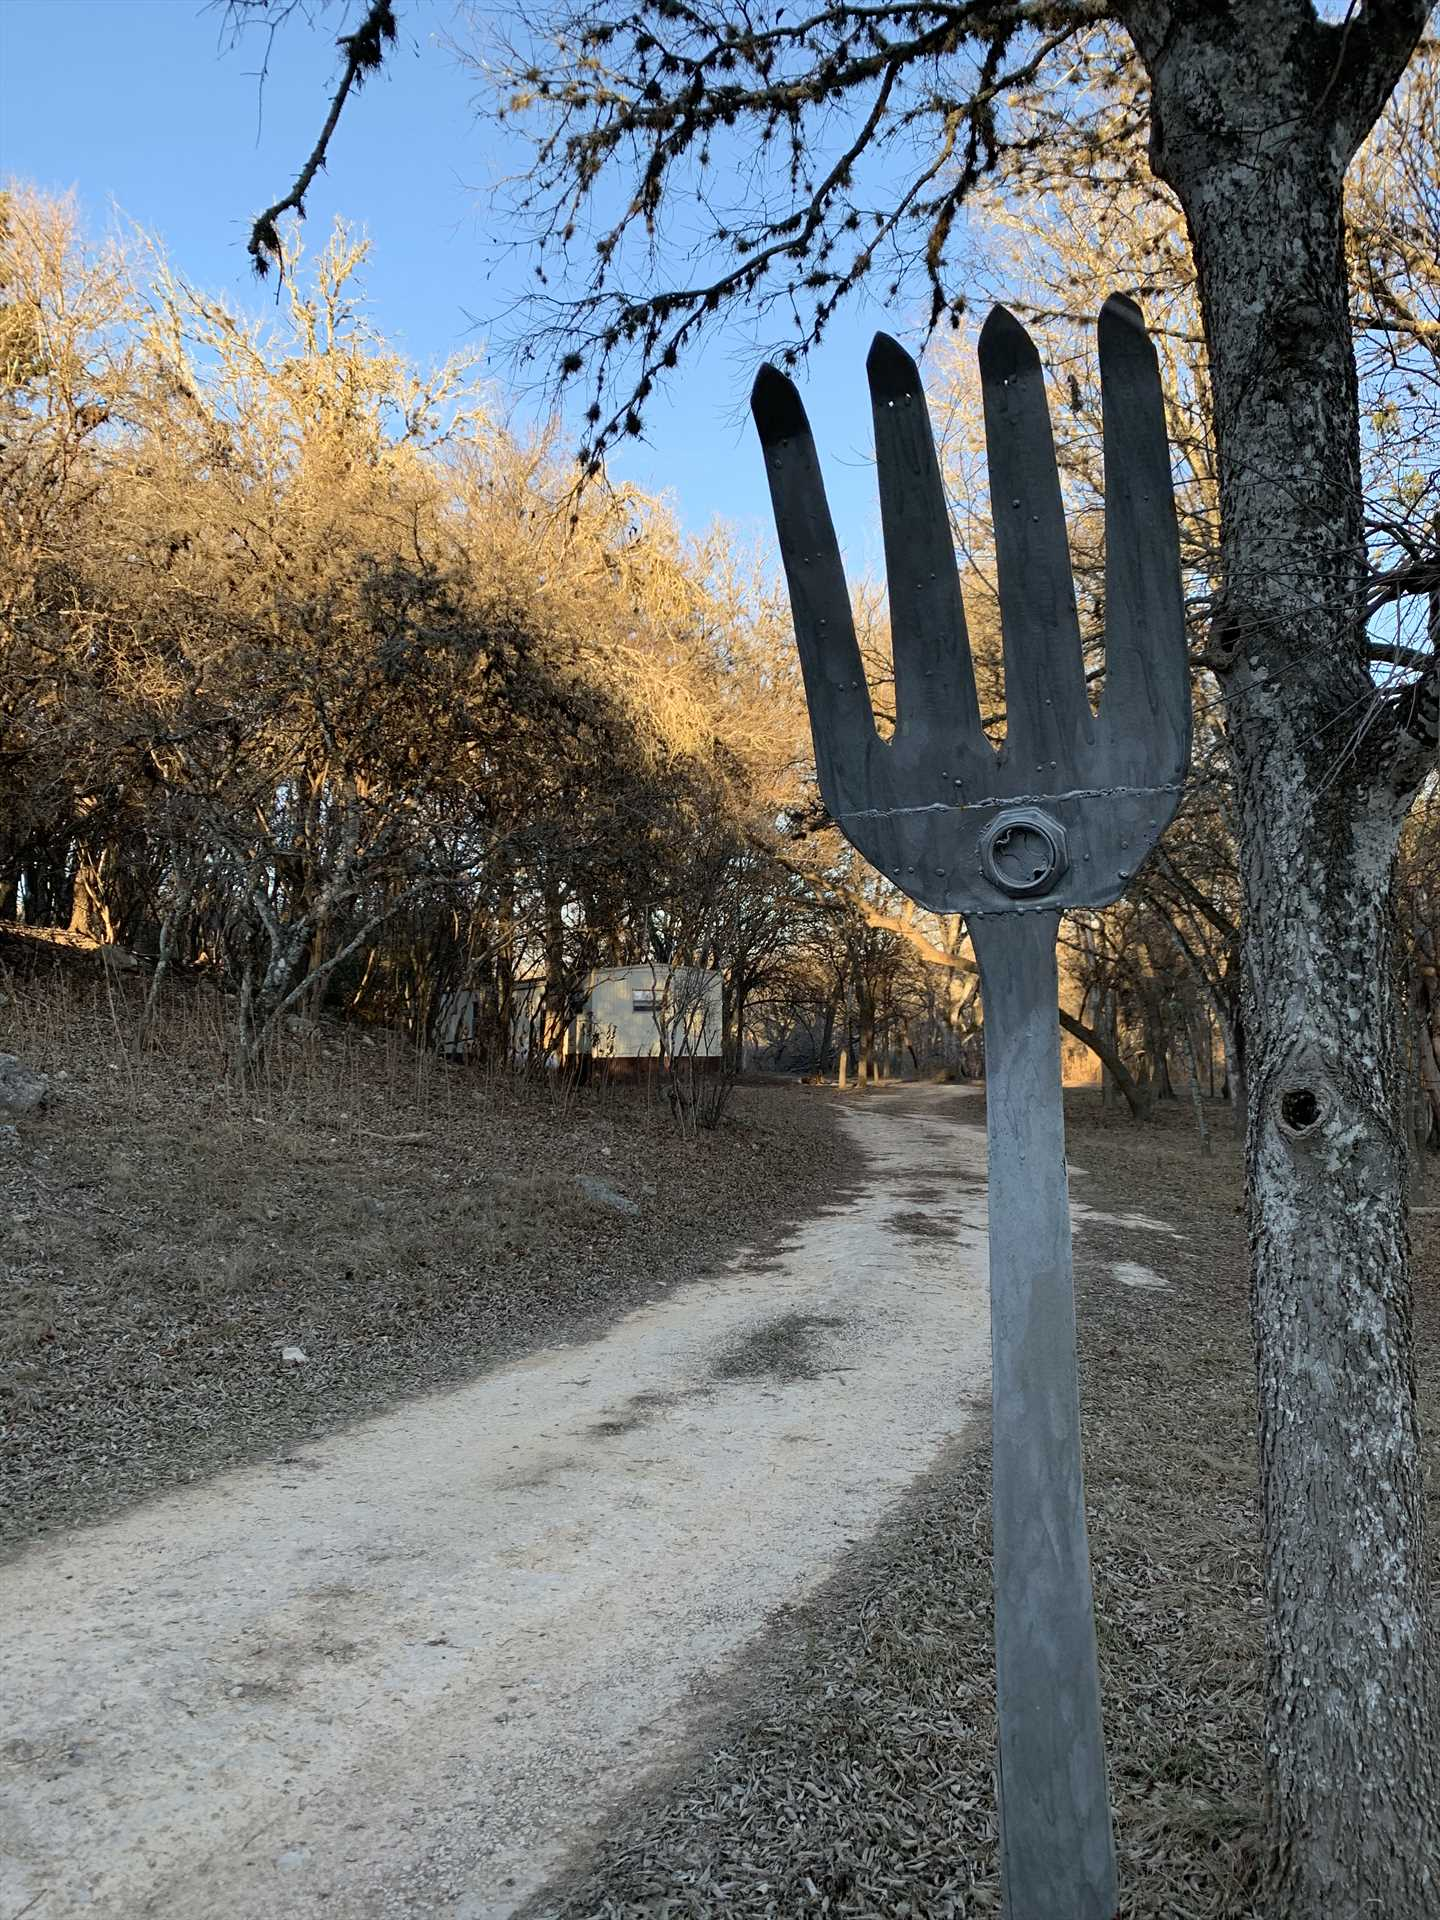 Miles of country roads (with and without forks) surround the ranch for scenic Hill Country tours!